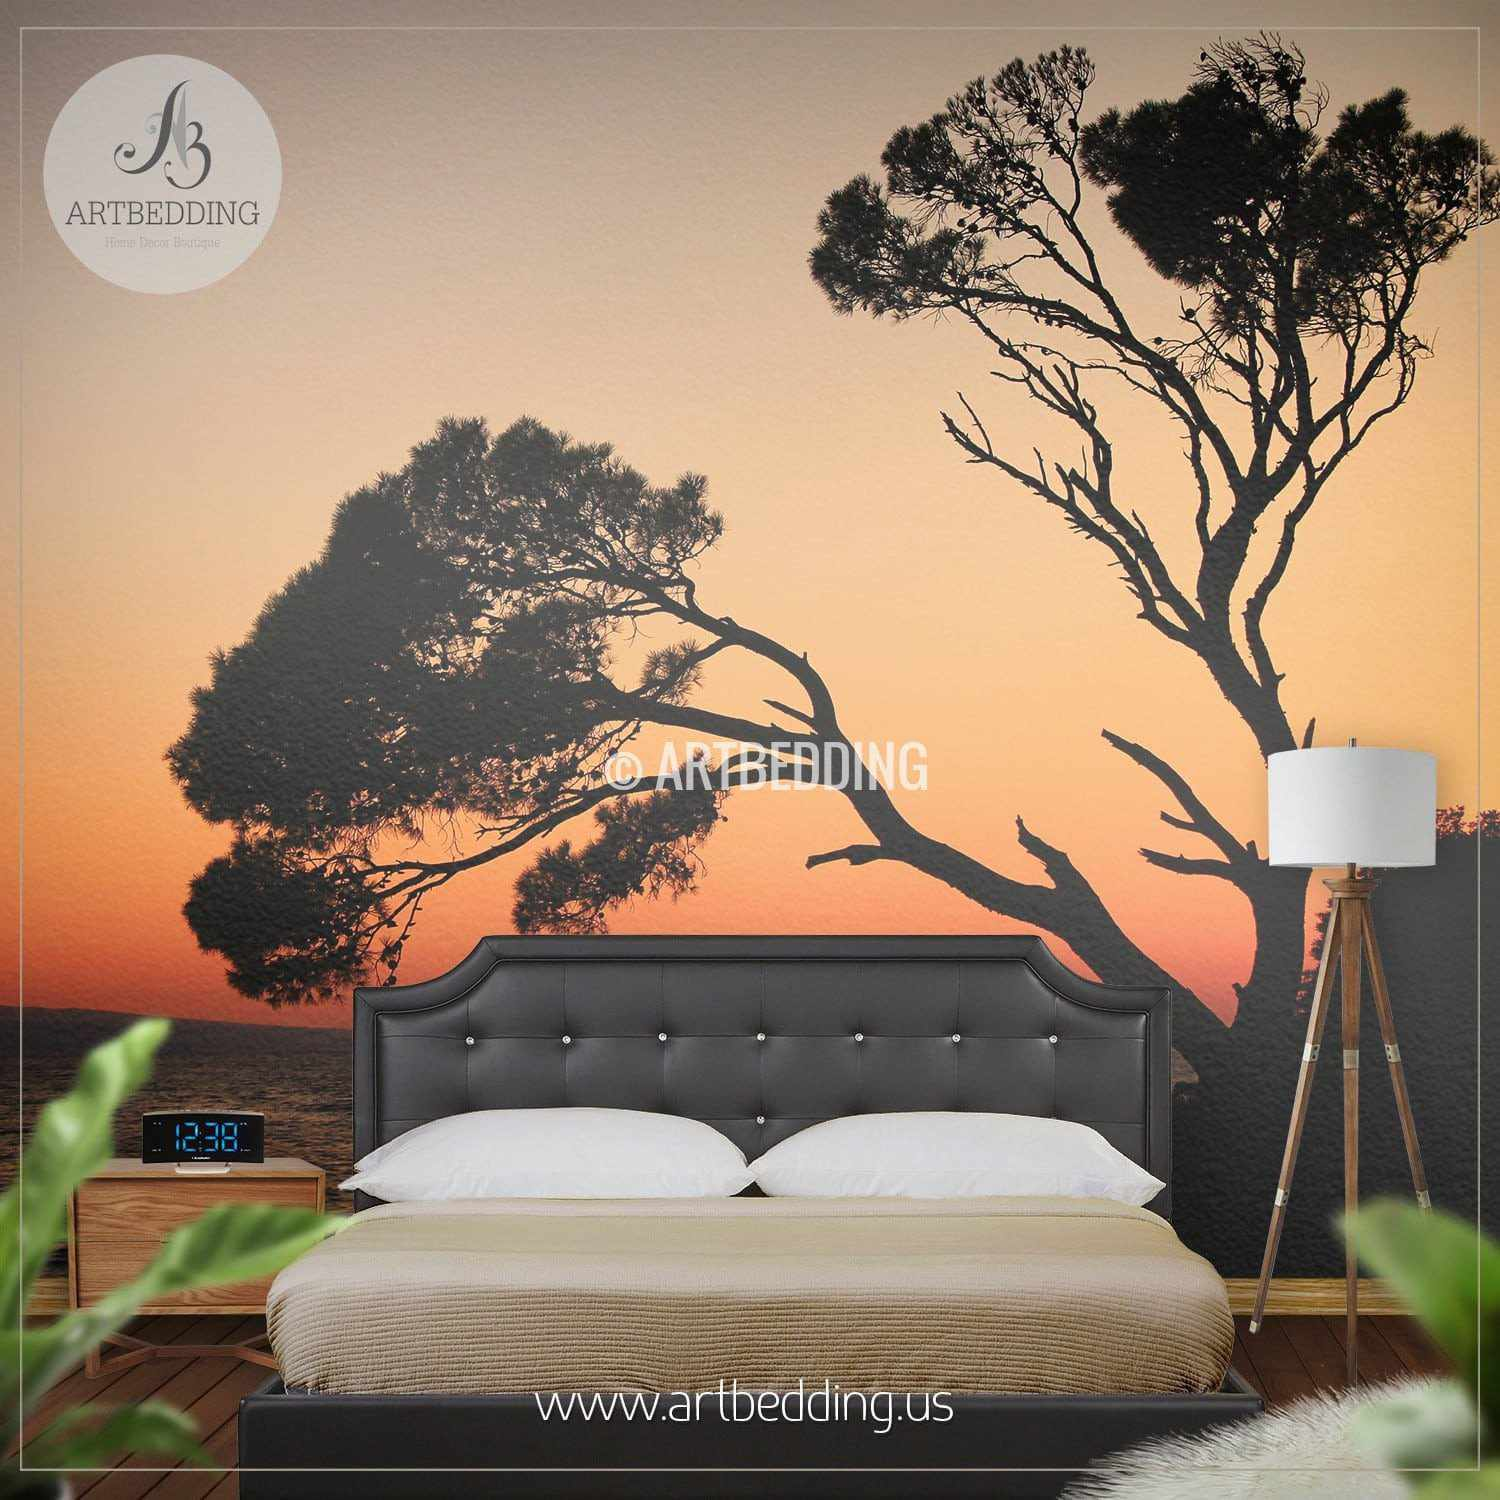 sunset tree silhouettes self adhesive photo mural artbedding sunset tree silhouettes wall mural self adhesive peel stick photo mural nature photo